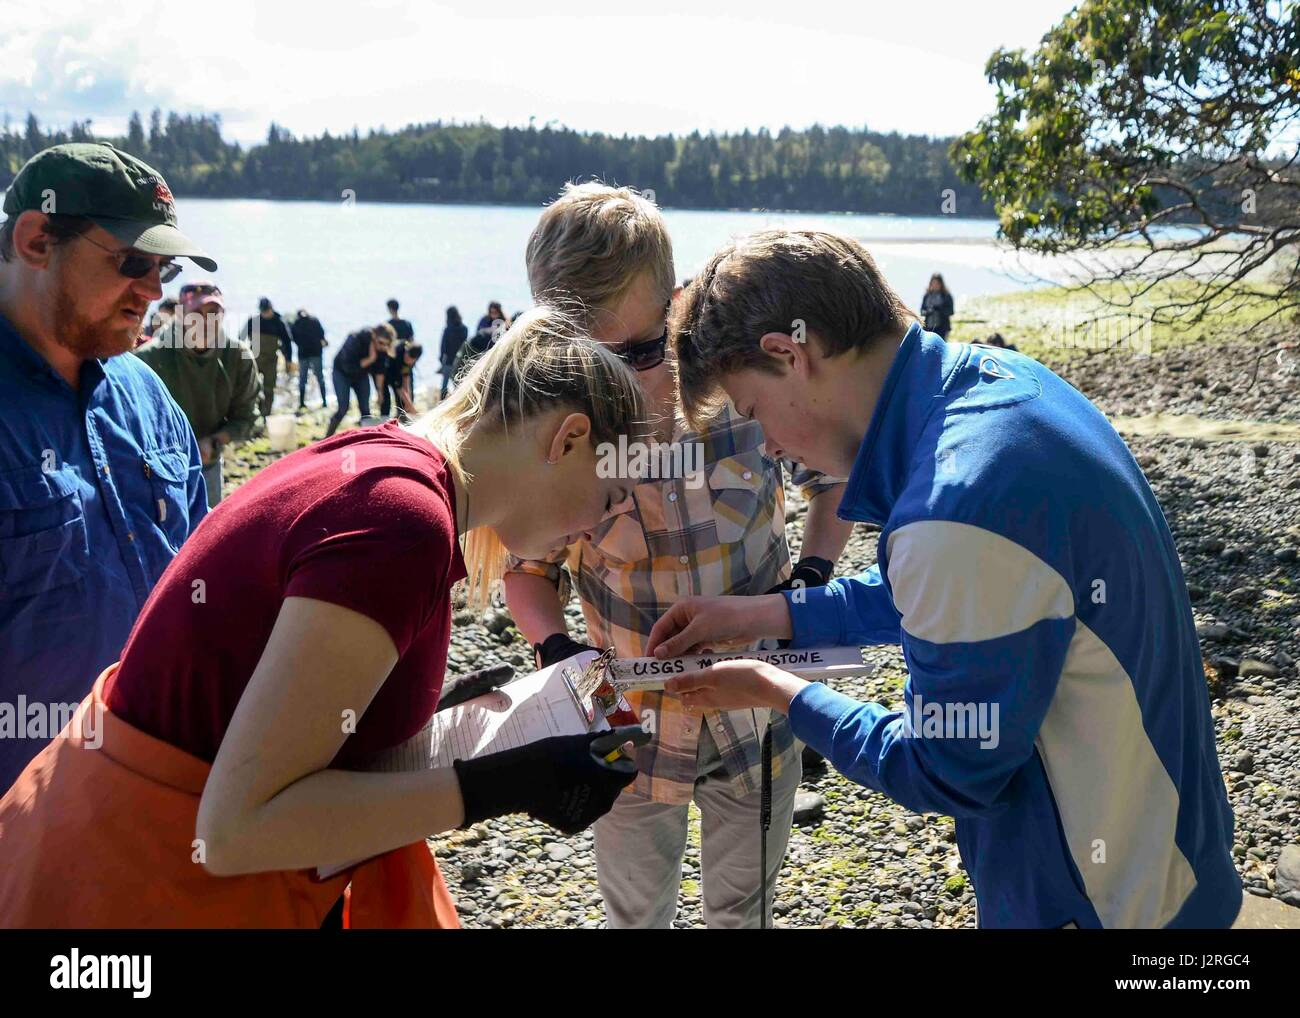 170428-N-VH385-035 INDIAN ISLAND, Wash., (April 28, 2017) – Students from Blue Heron Middle School measure a fish - Stock Image